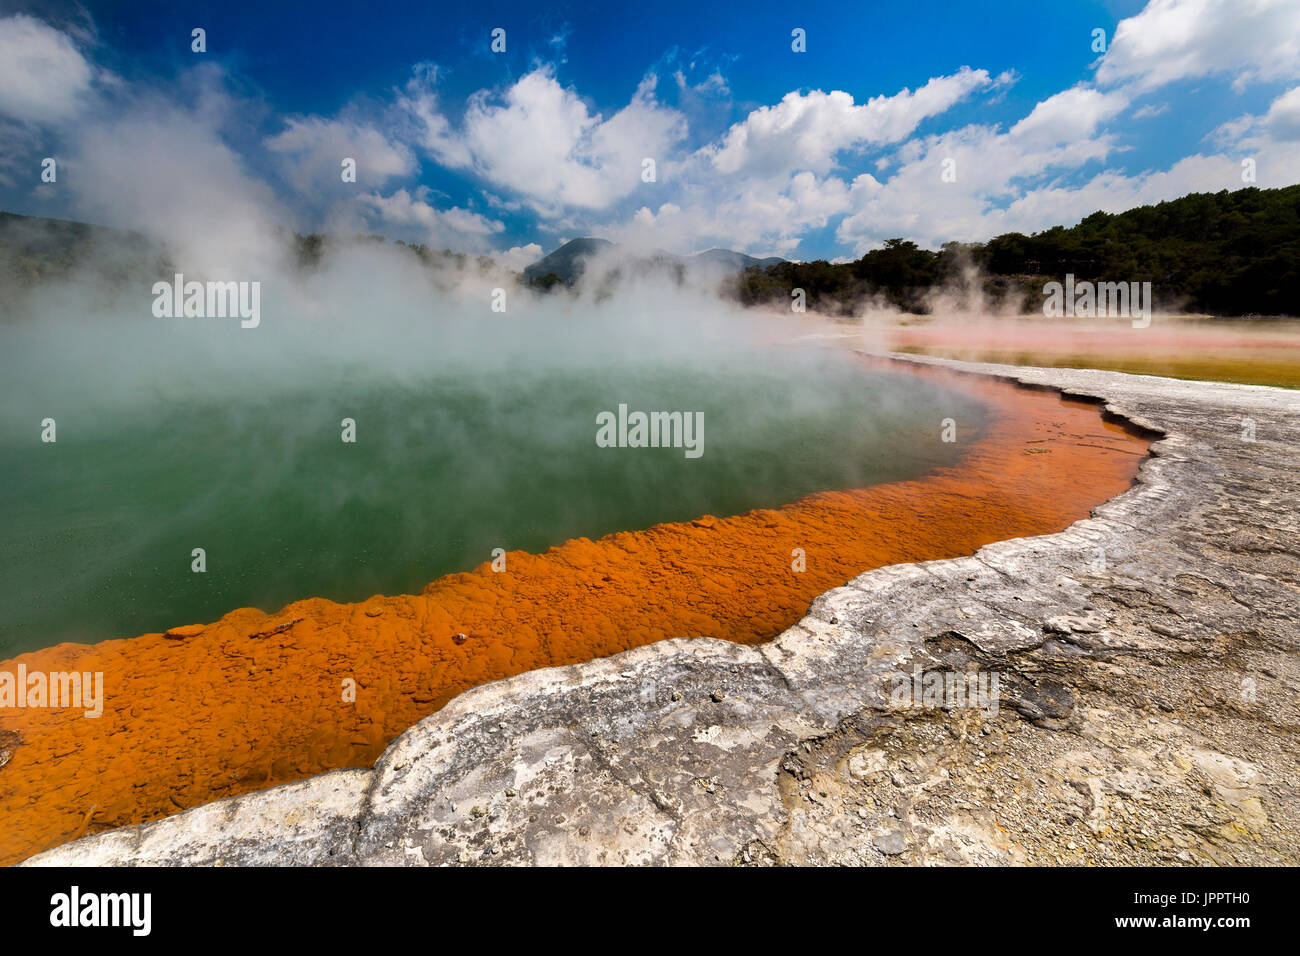 Steaming hot water at the Champagne Pool, Waiotapu Thermal Reserve, Rotorua, North Island New Zealand - Stock Image